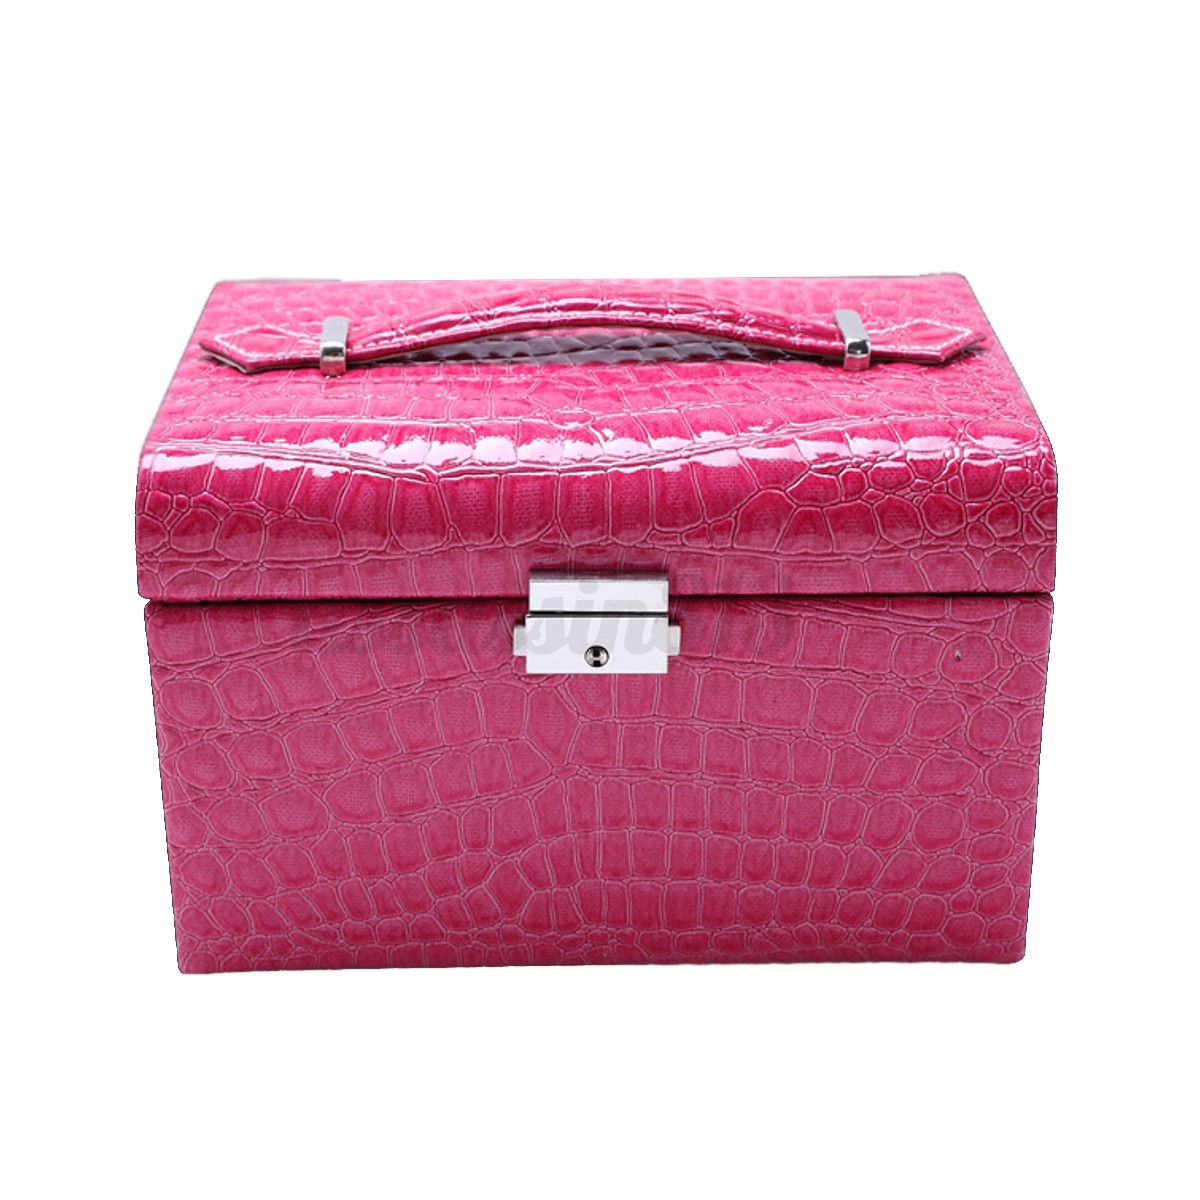 Jewelry-Box-Bracelet-Earring-Storage-PU-Leather-Container-Organizer-Case-Holder